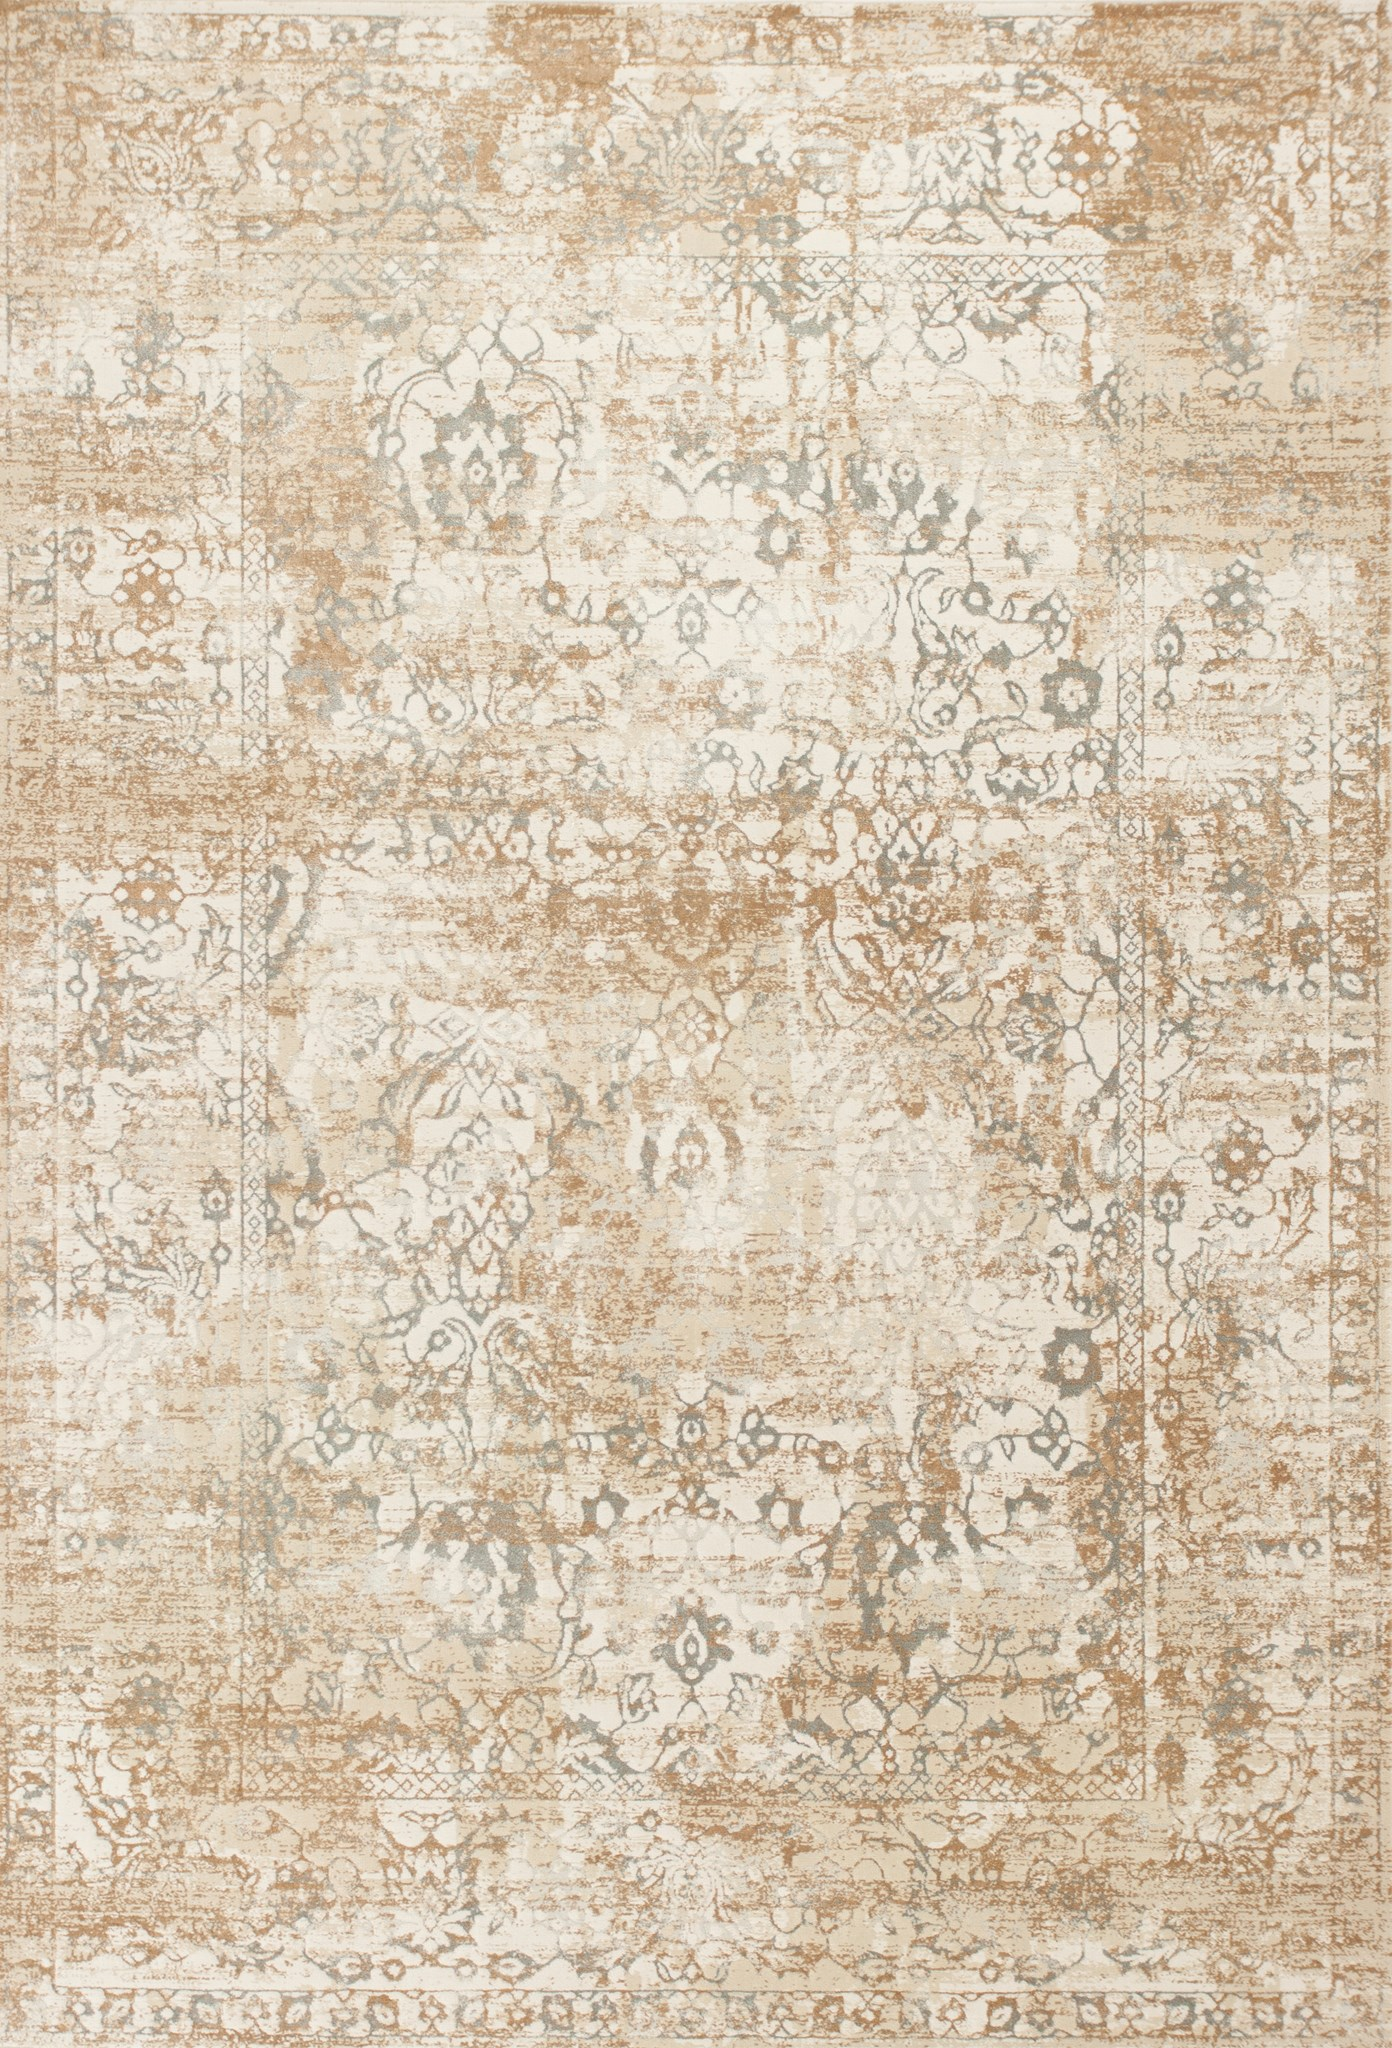 Crete 6509 Beige Illusion